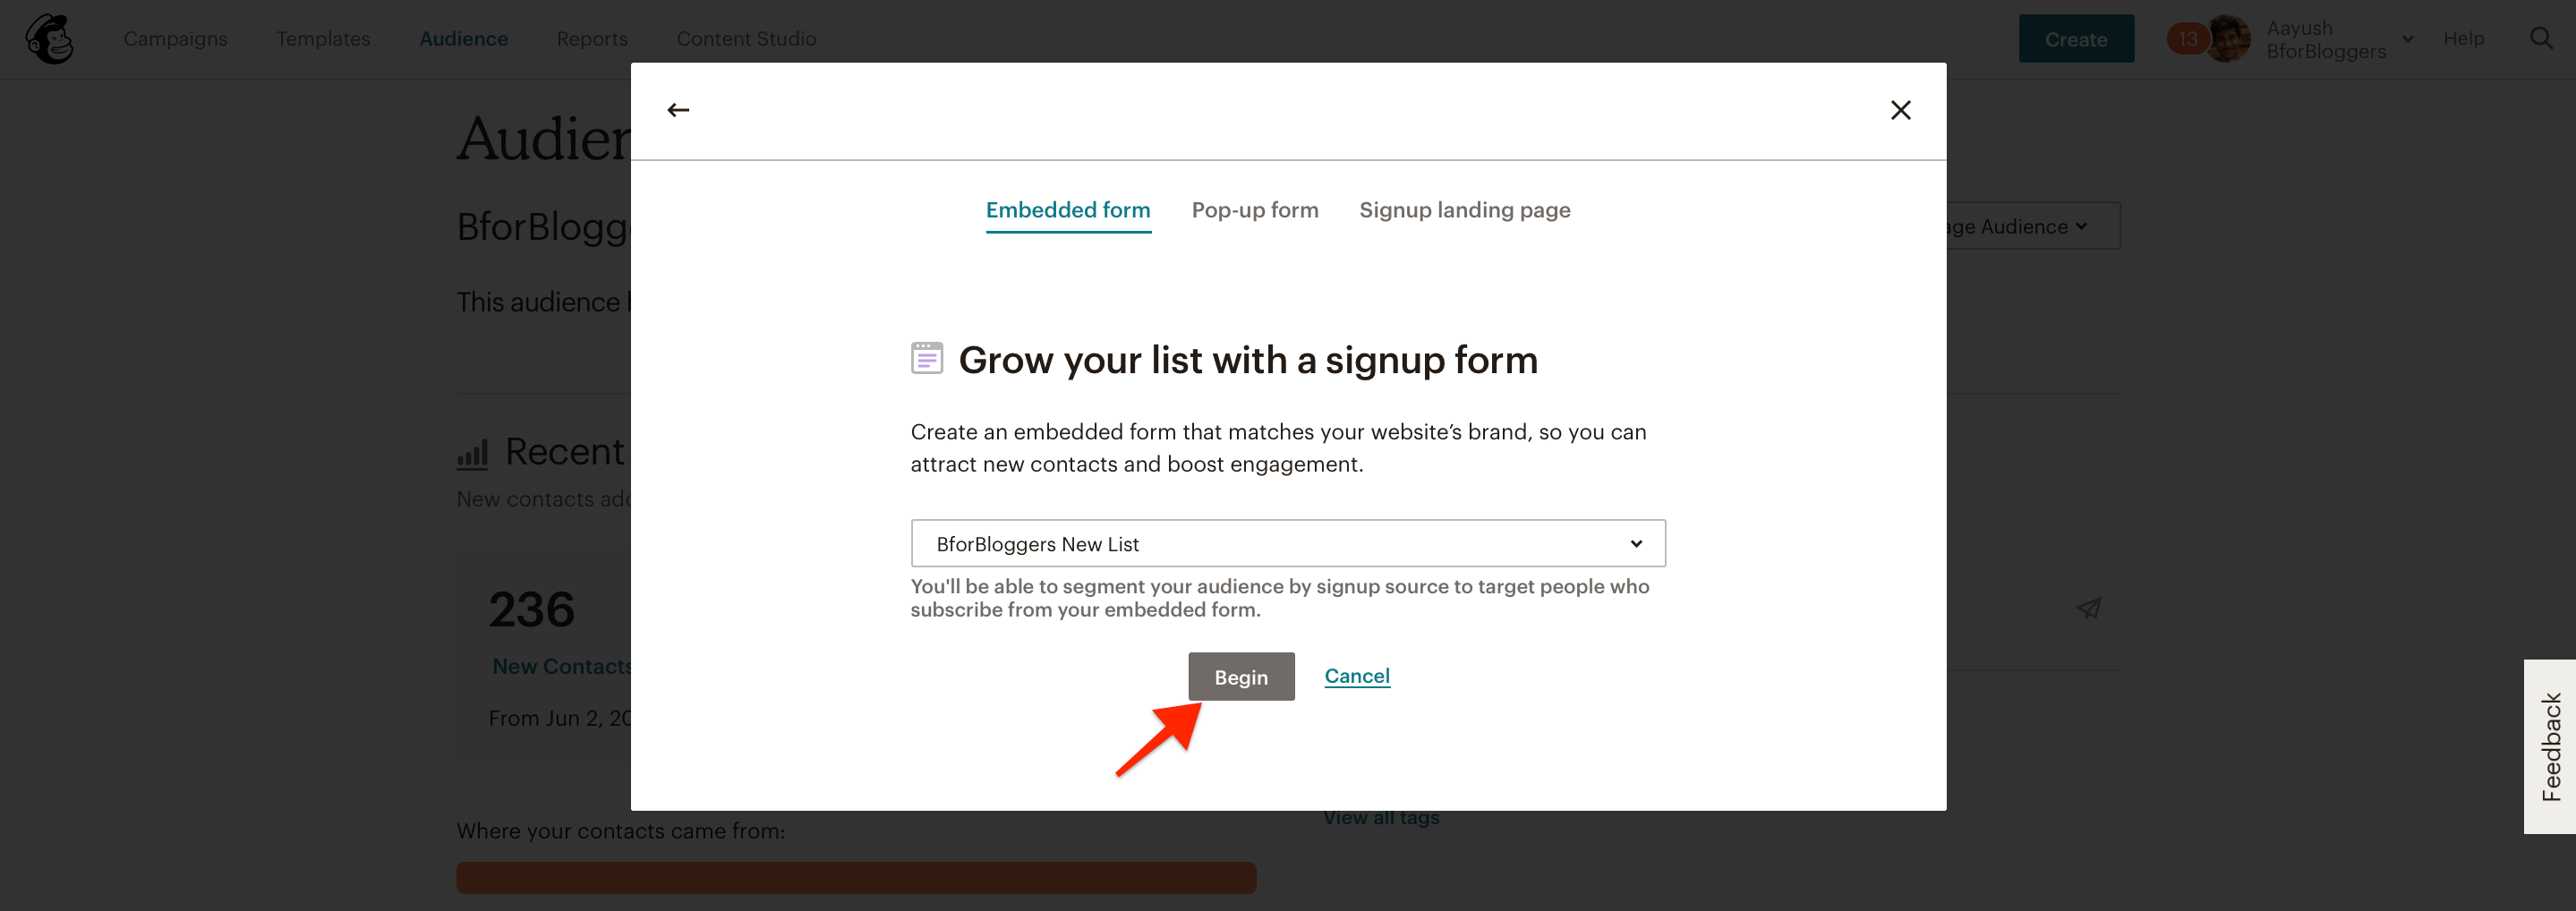 click-on-begin-for-optin-forms